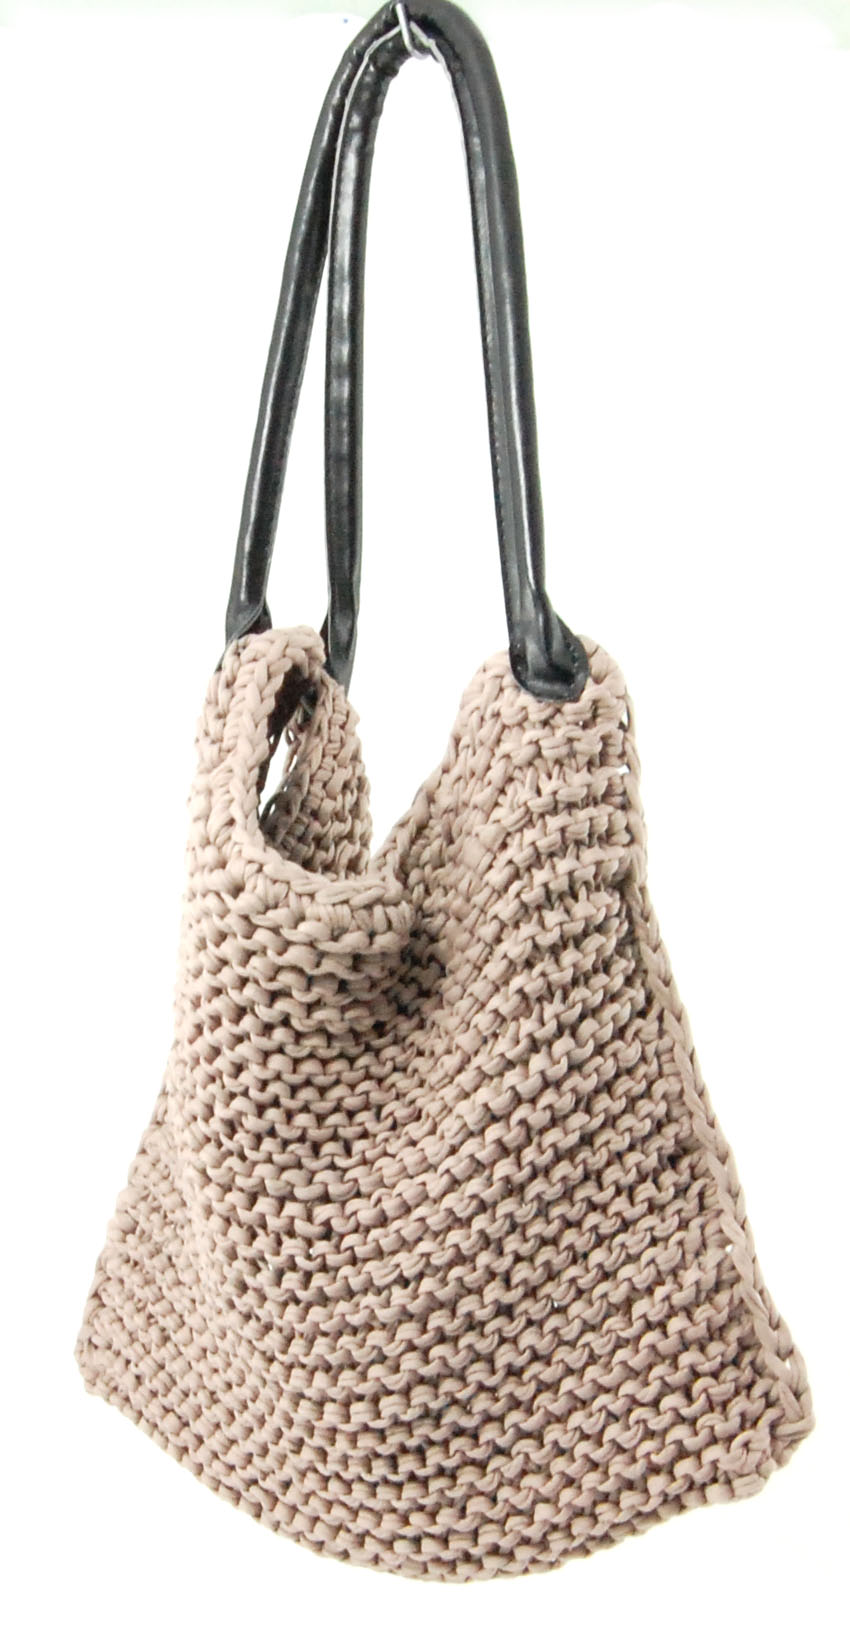 Knitting Bag Pattern Pinterest : Knitted bag tutorial LVLY